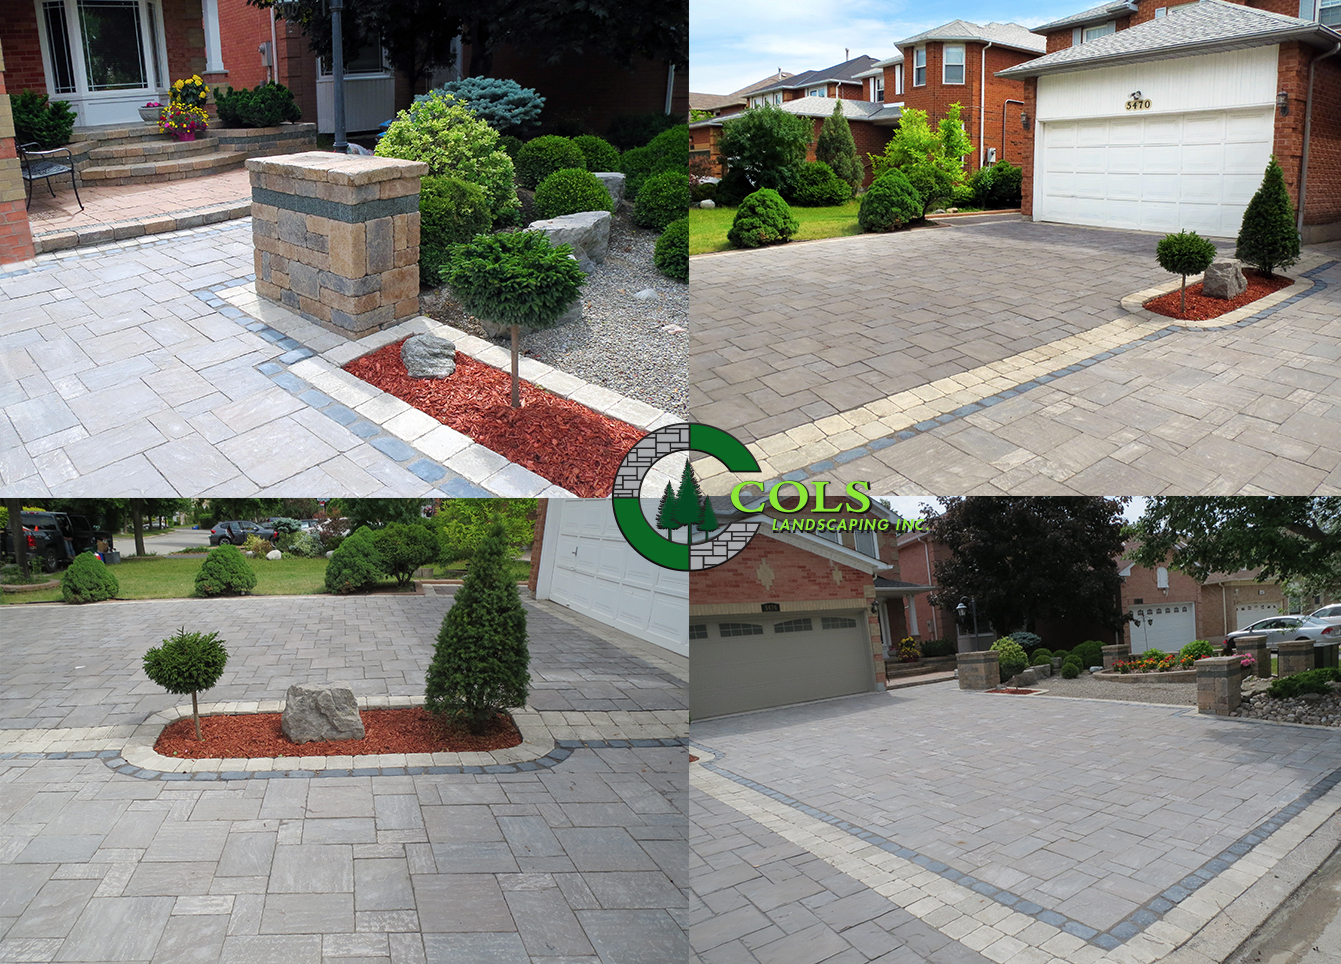 COLS new driveway landscaping ideas